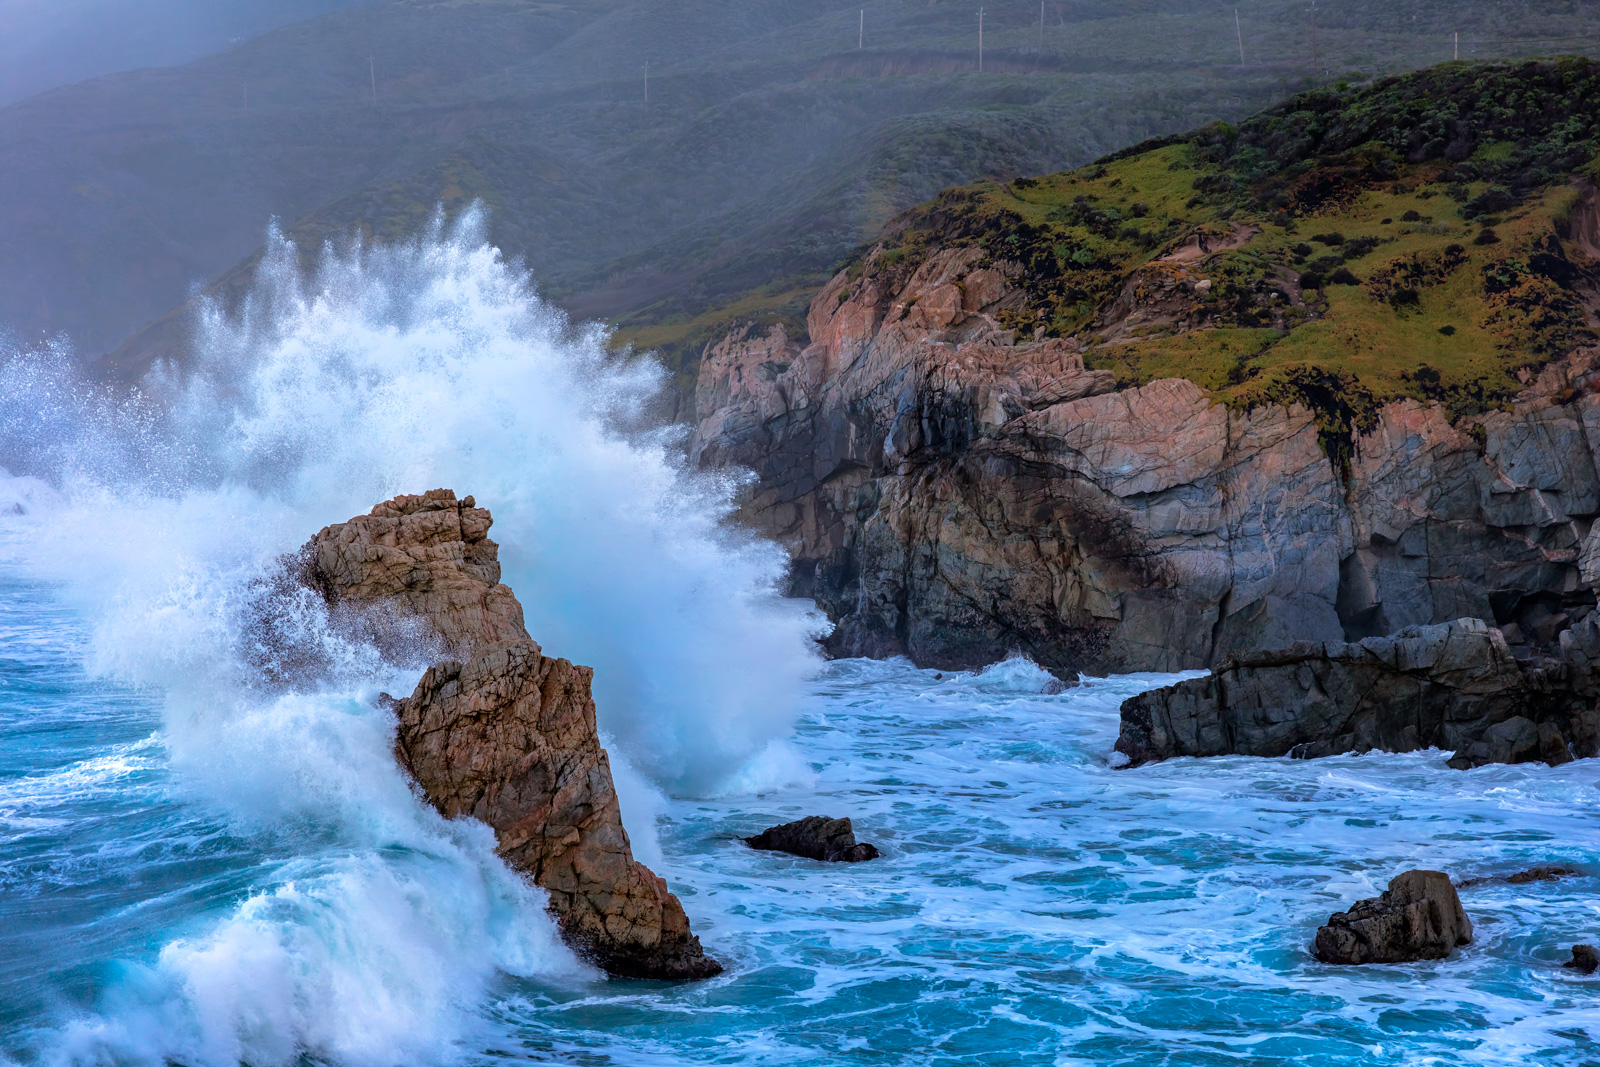 California, Garrapata, Storm, Wave